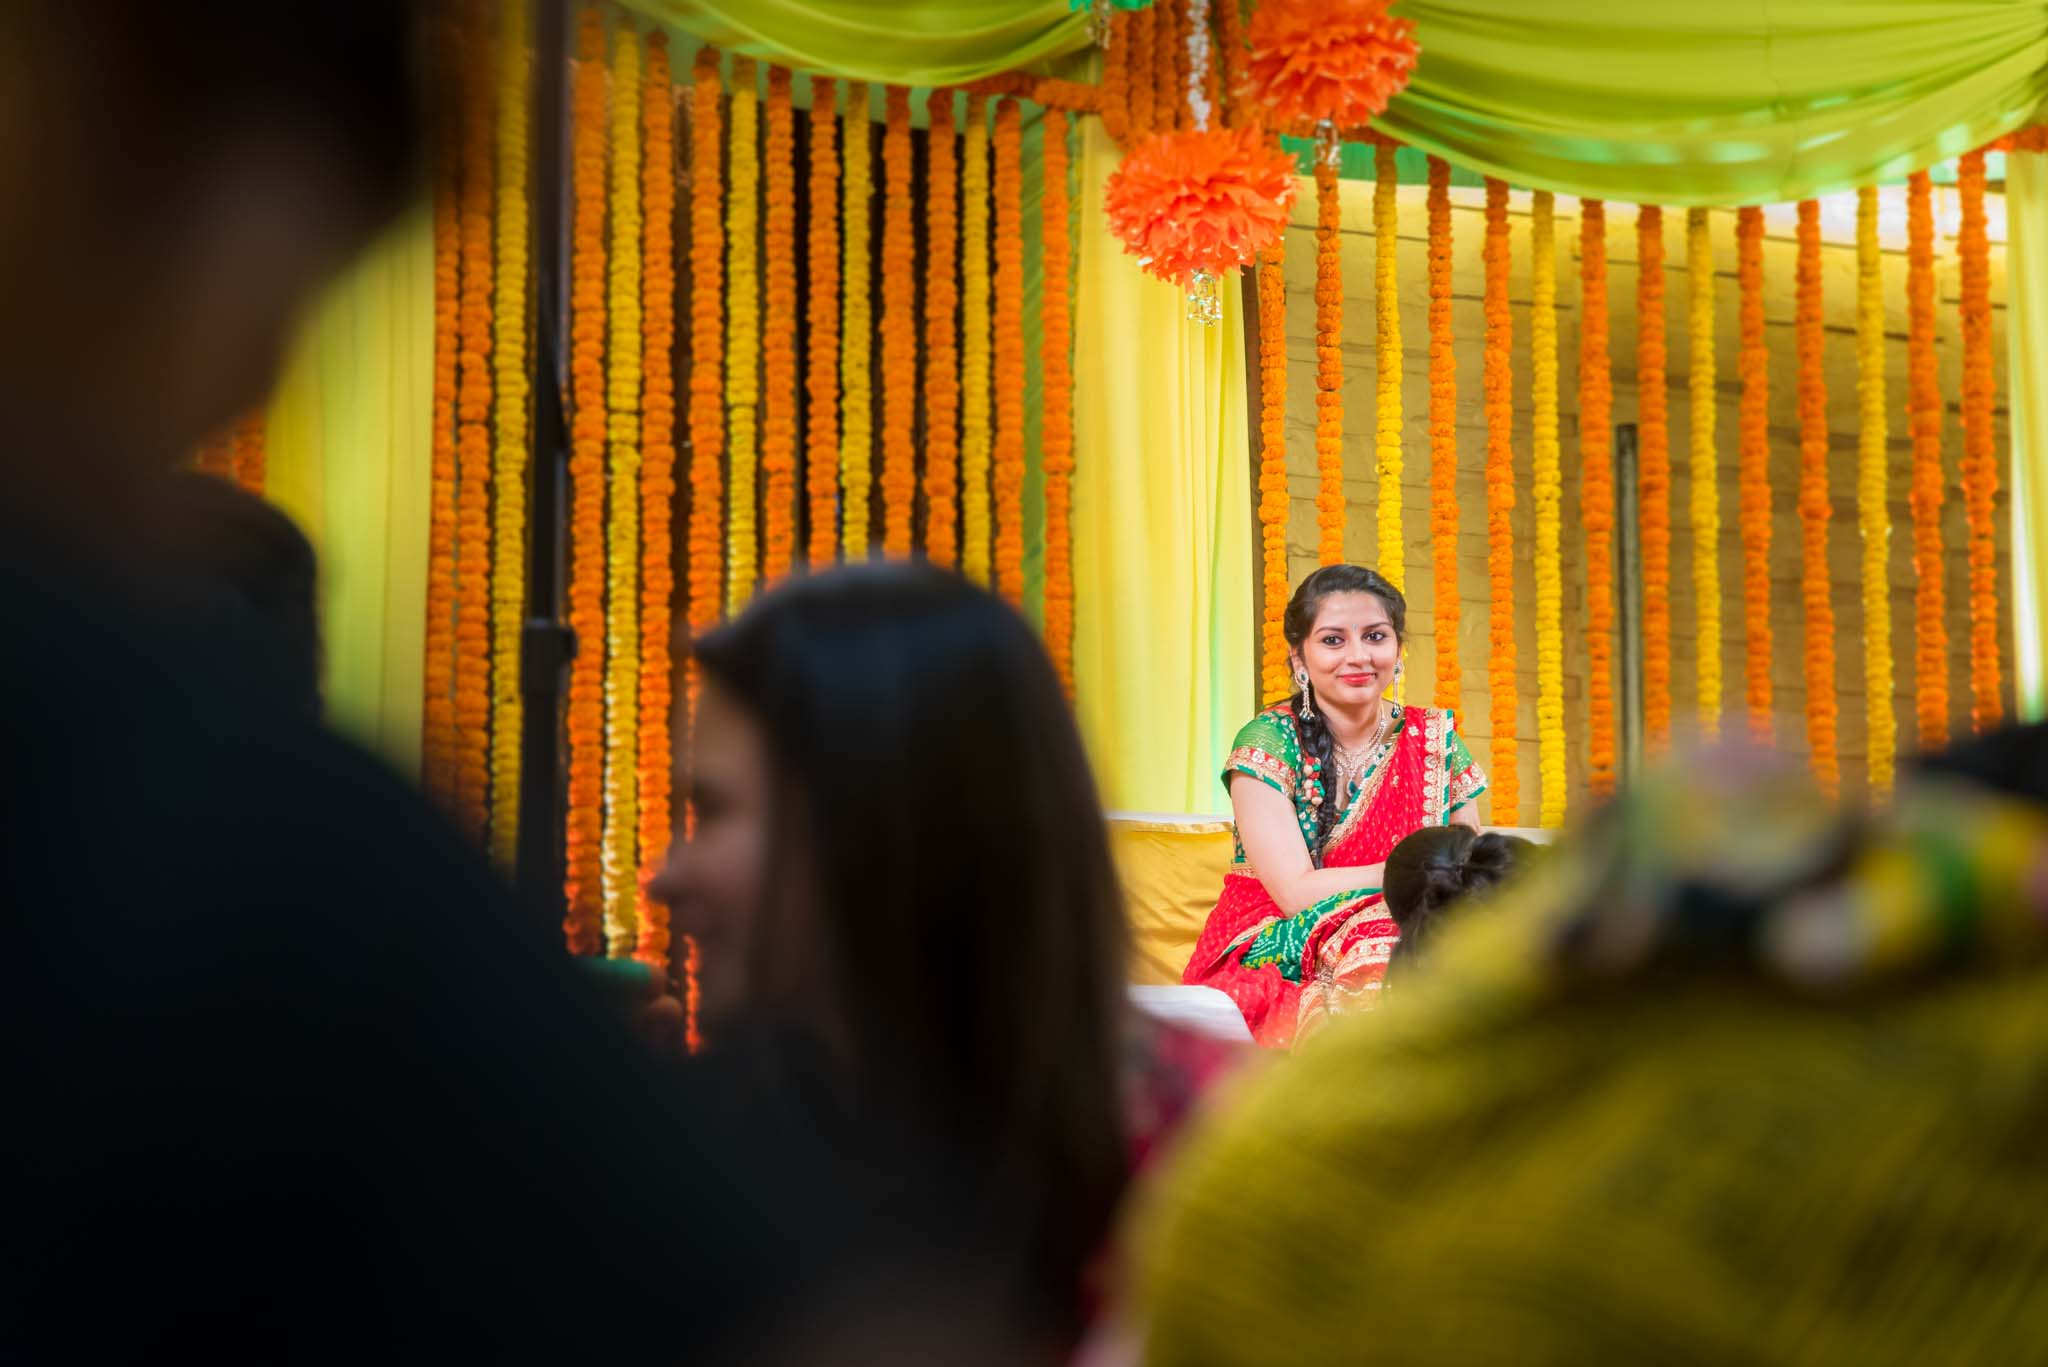 Candid-Wedding-Photography-Nagpur-Destination-6